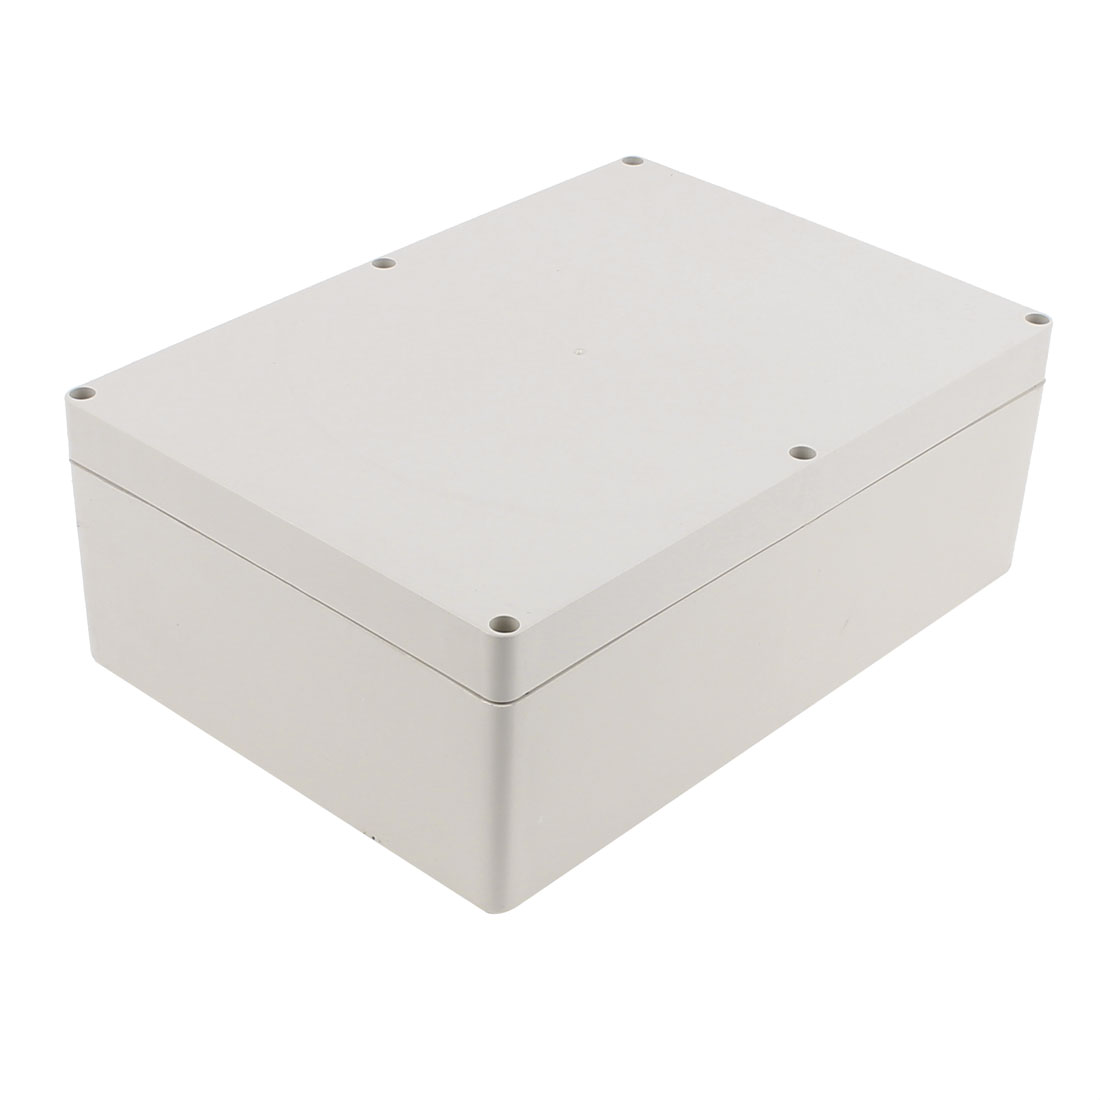 263 x 185 x 95mm Dustproof IP65 Junction Box Terminal Connecting Box Enclosure